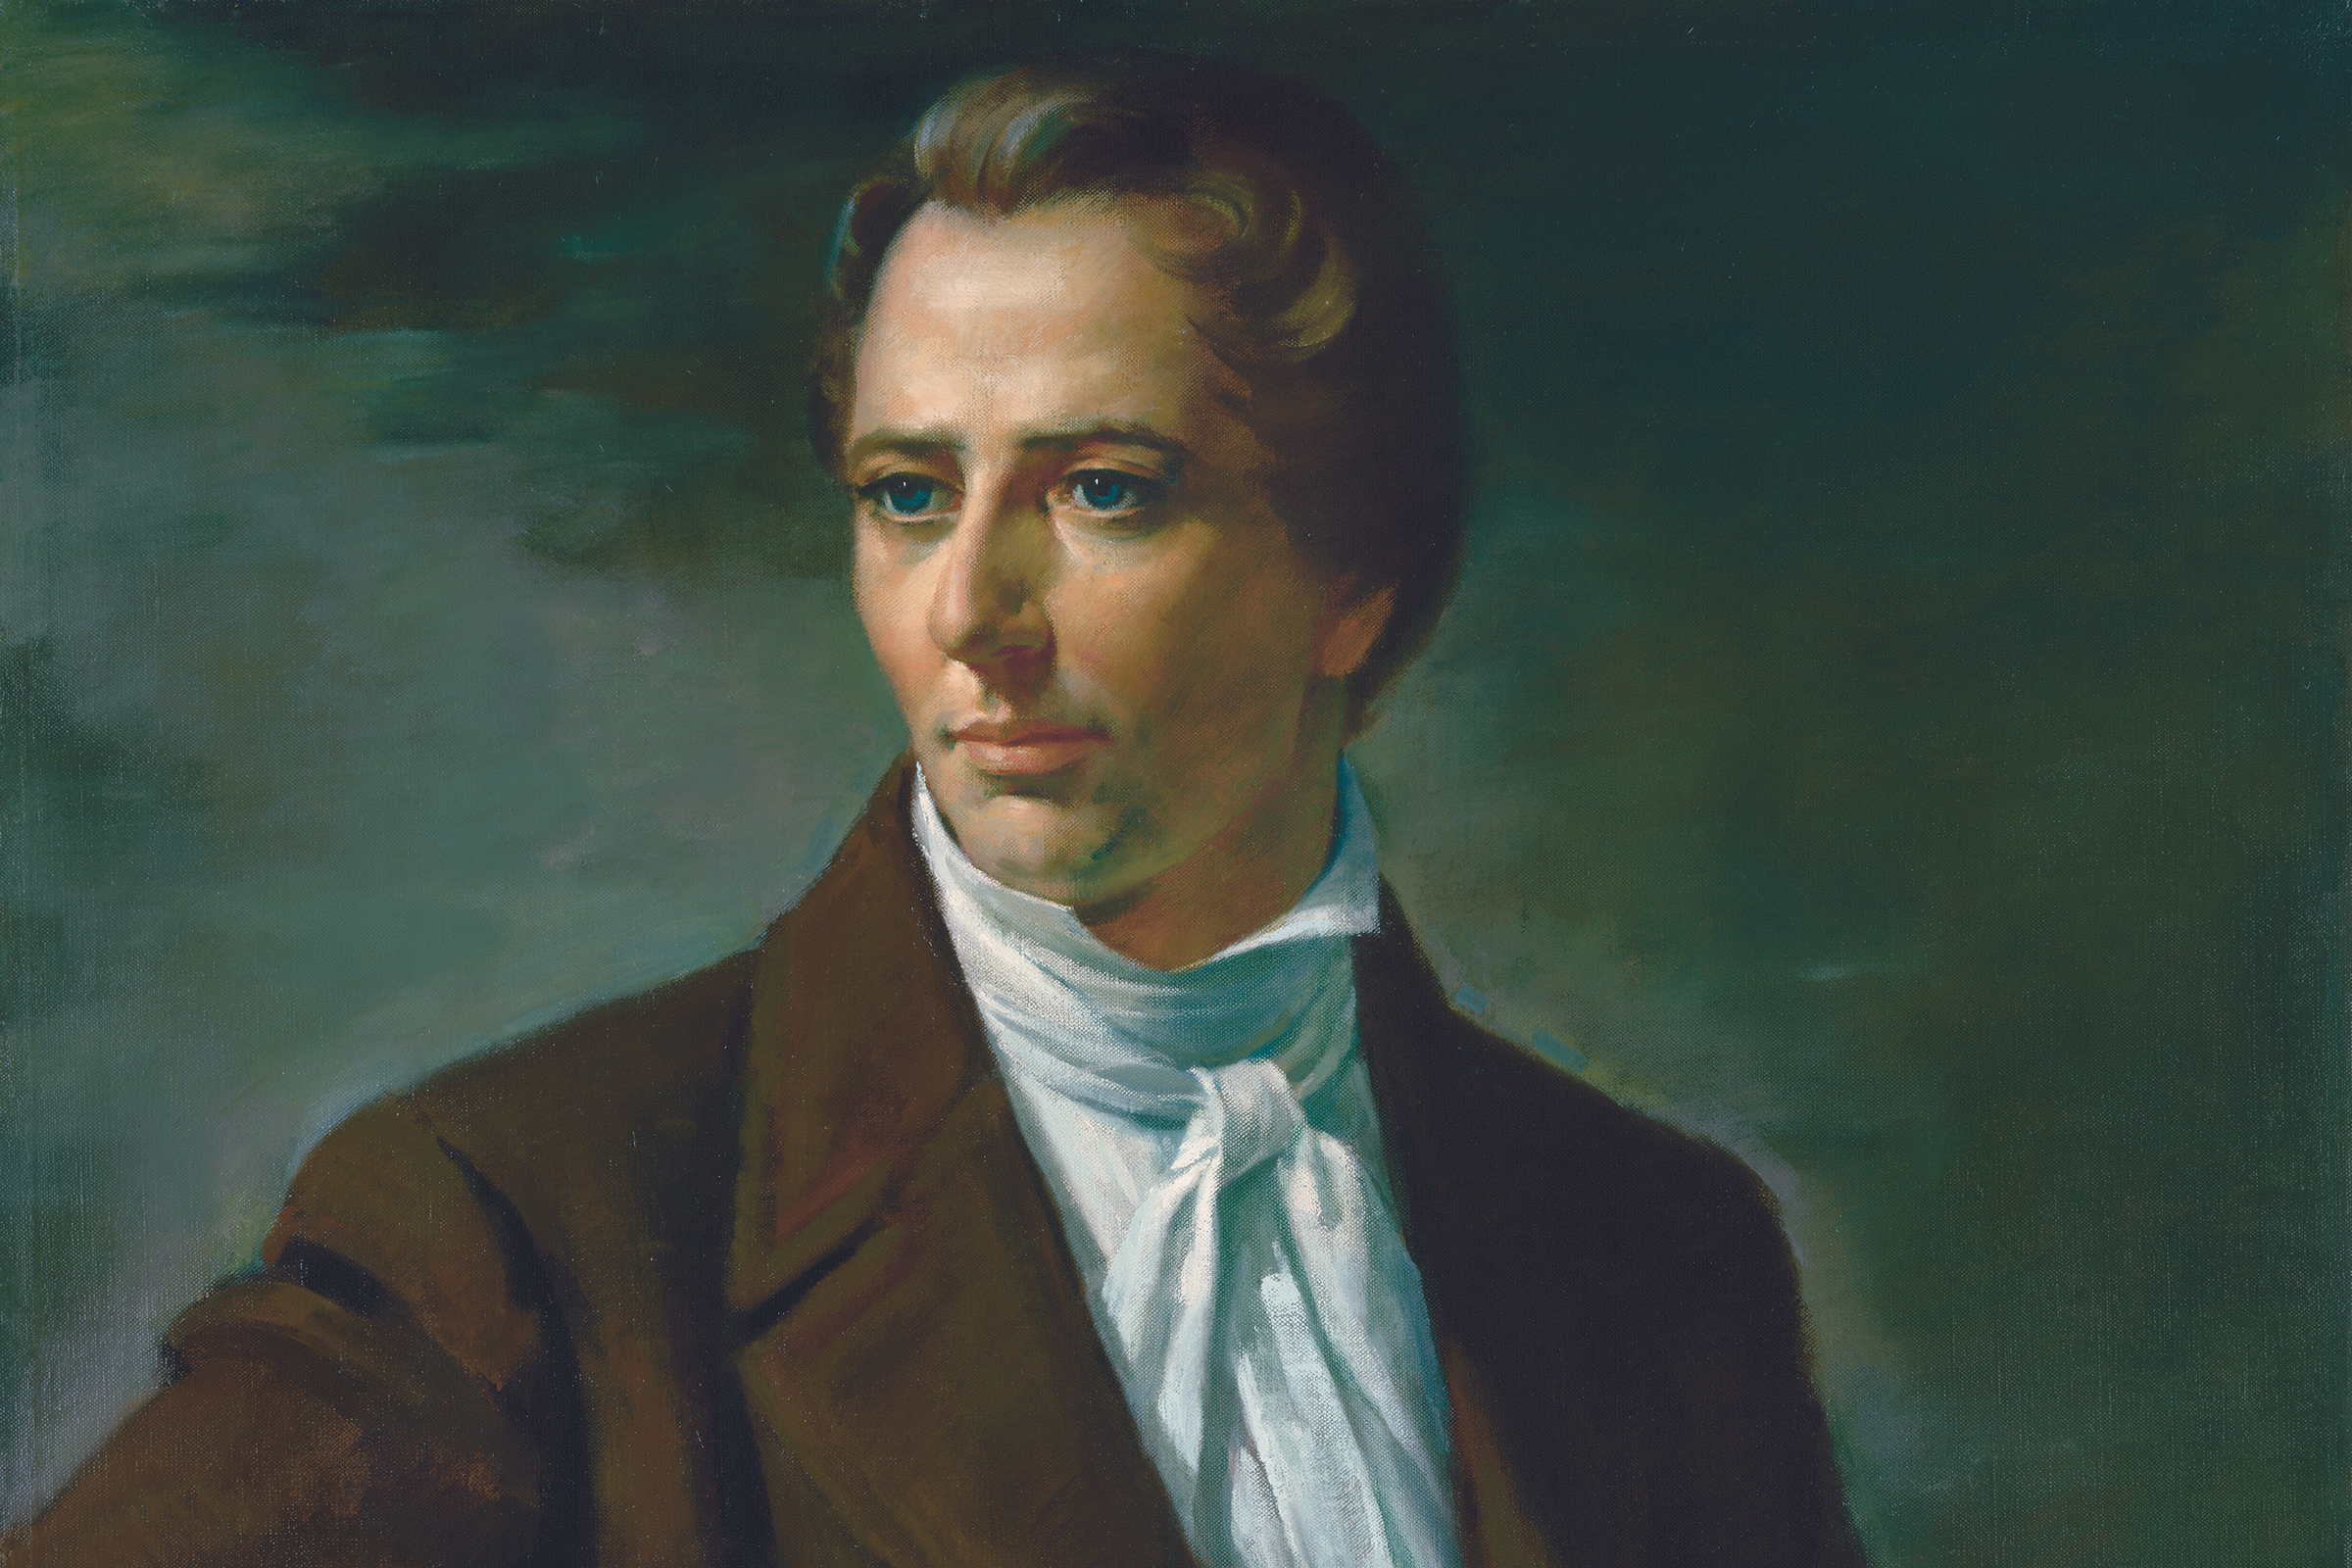 Church releases new volume of Joseph Smith Papers